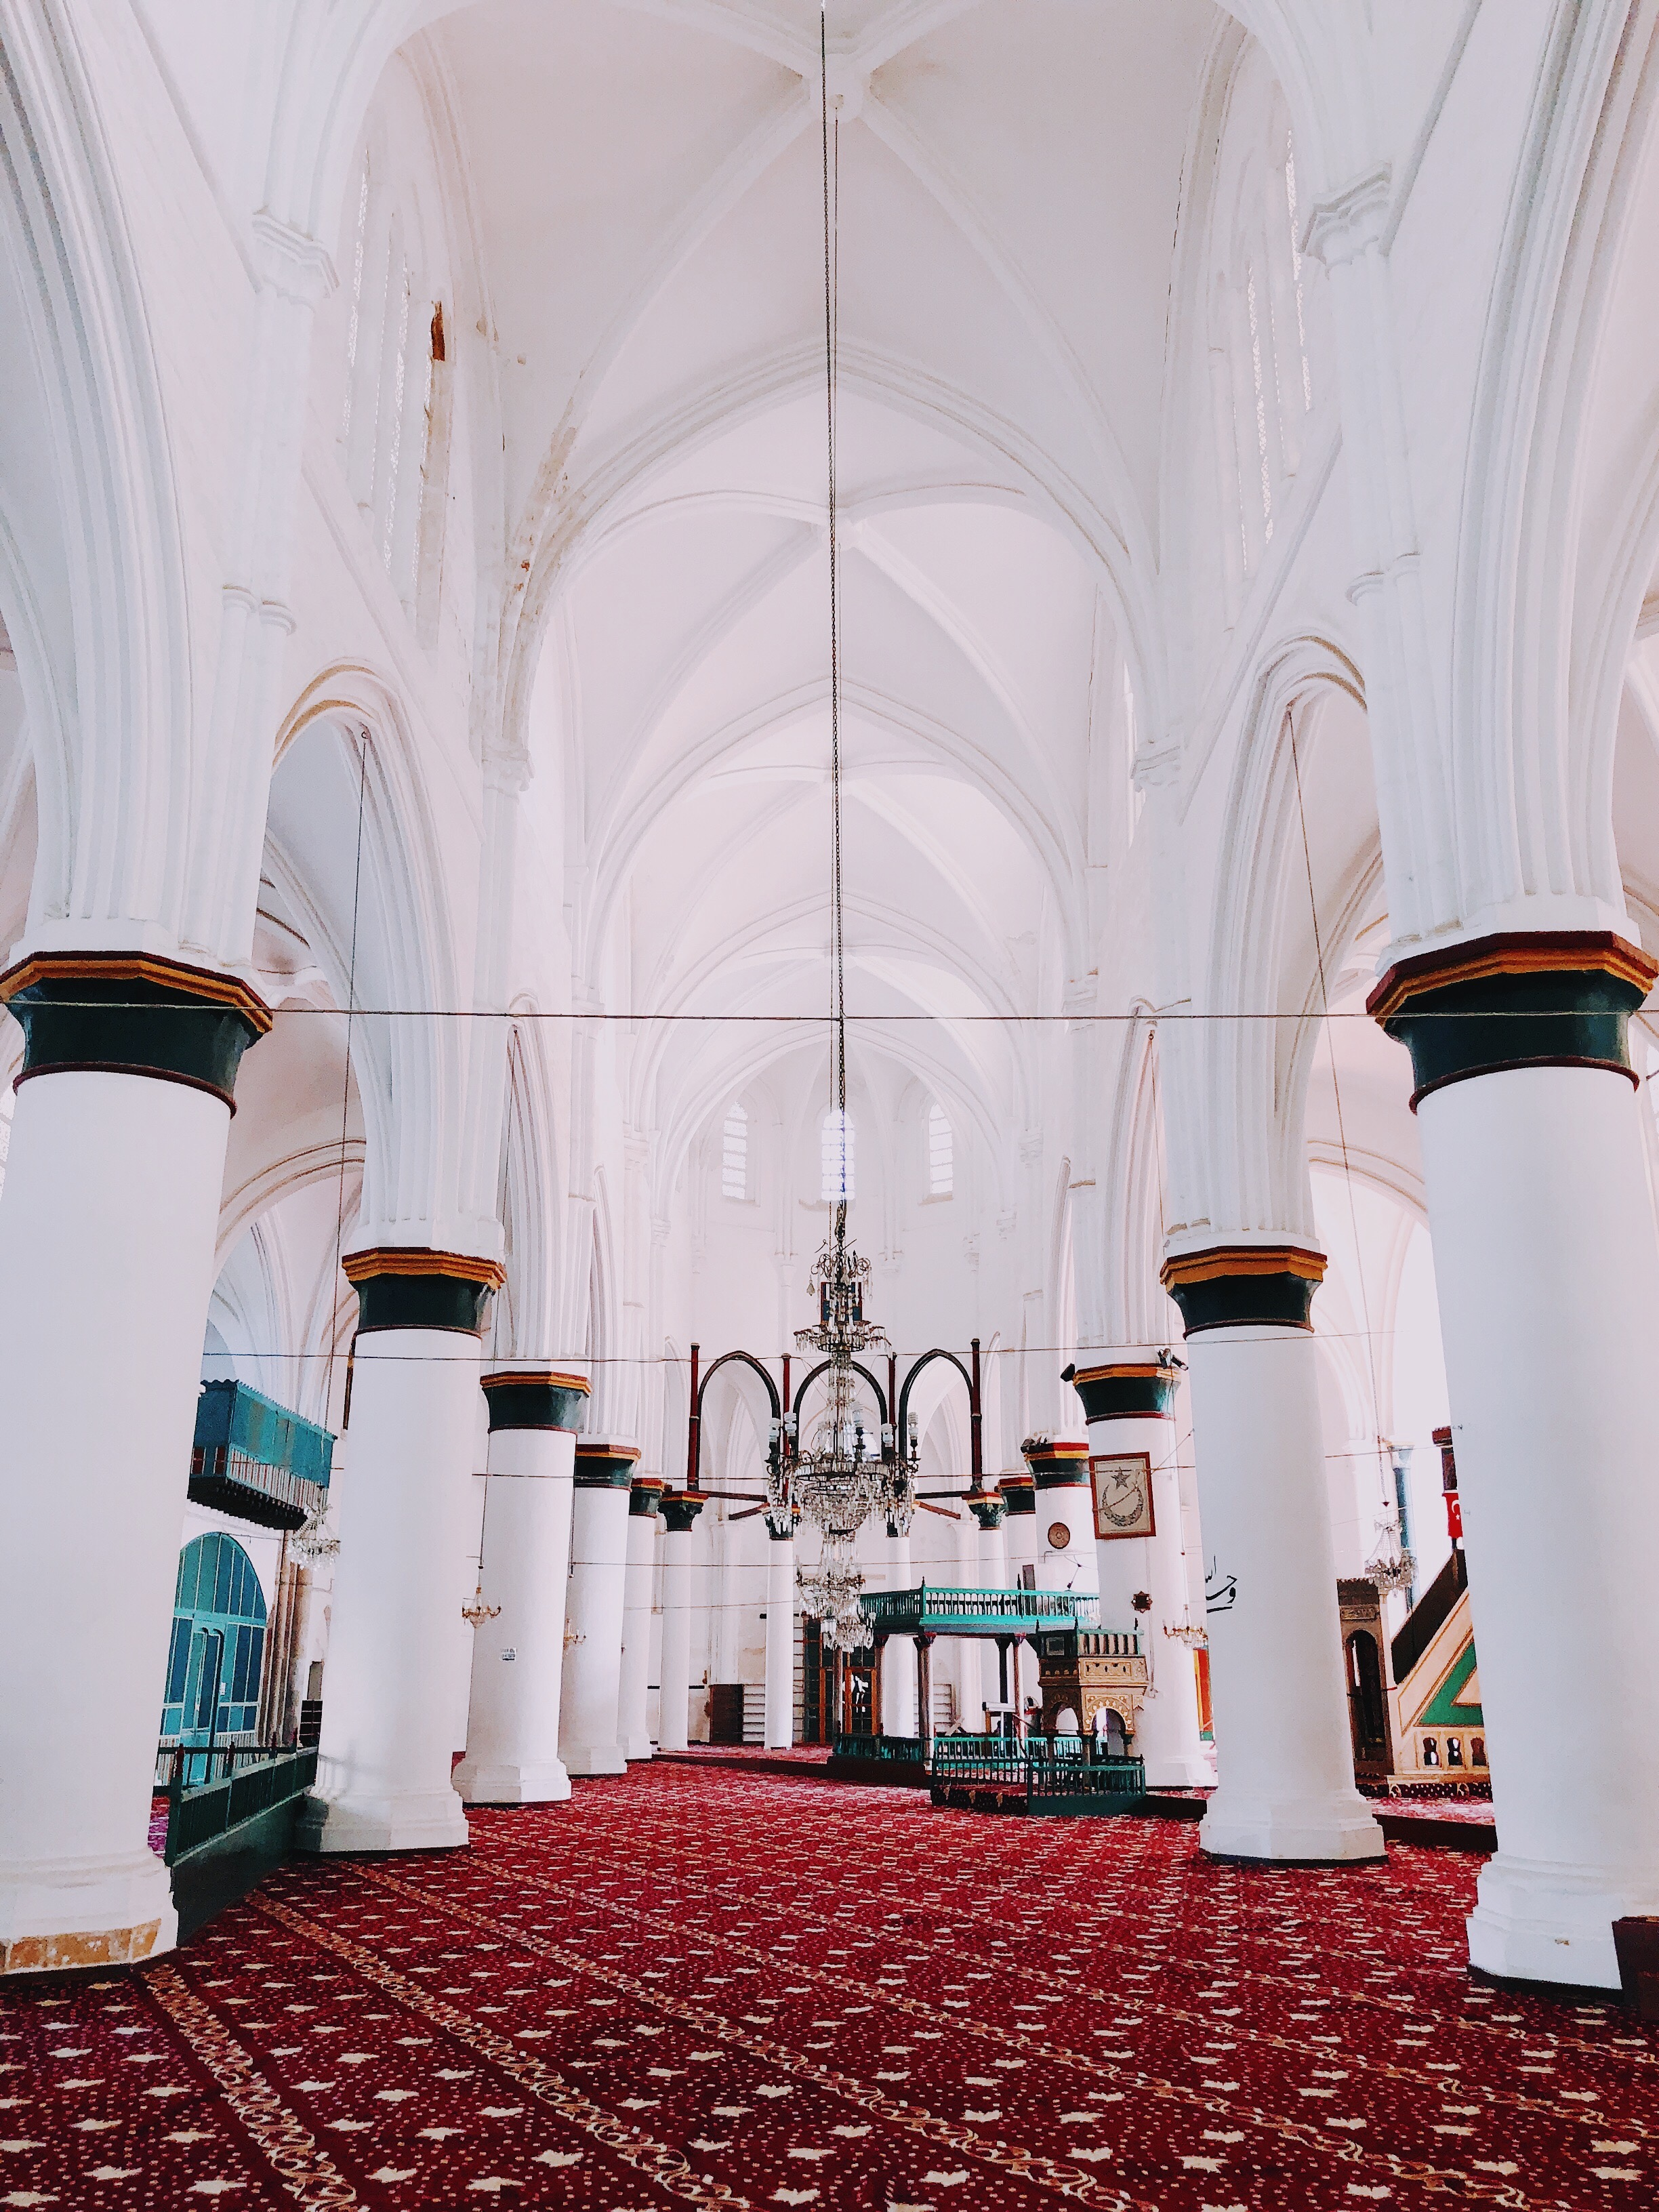 That's what a cathedral reconverts in a mosque looks like.